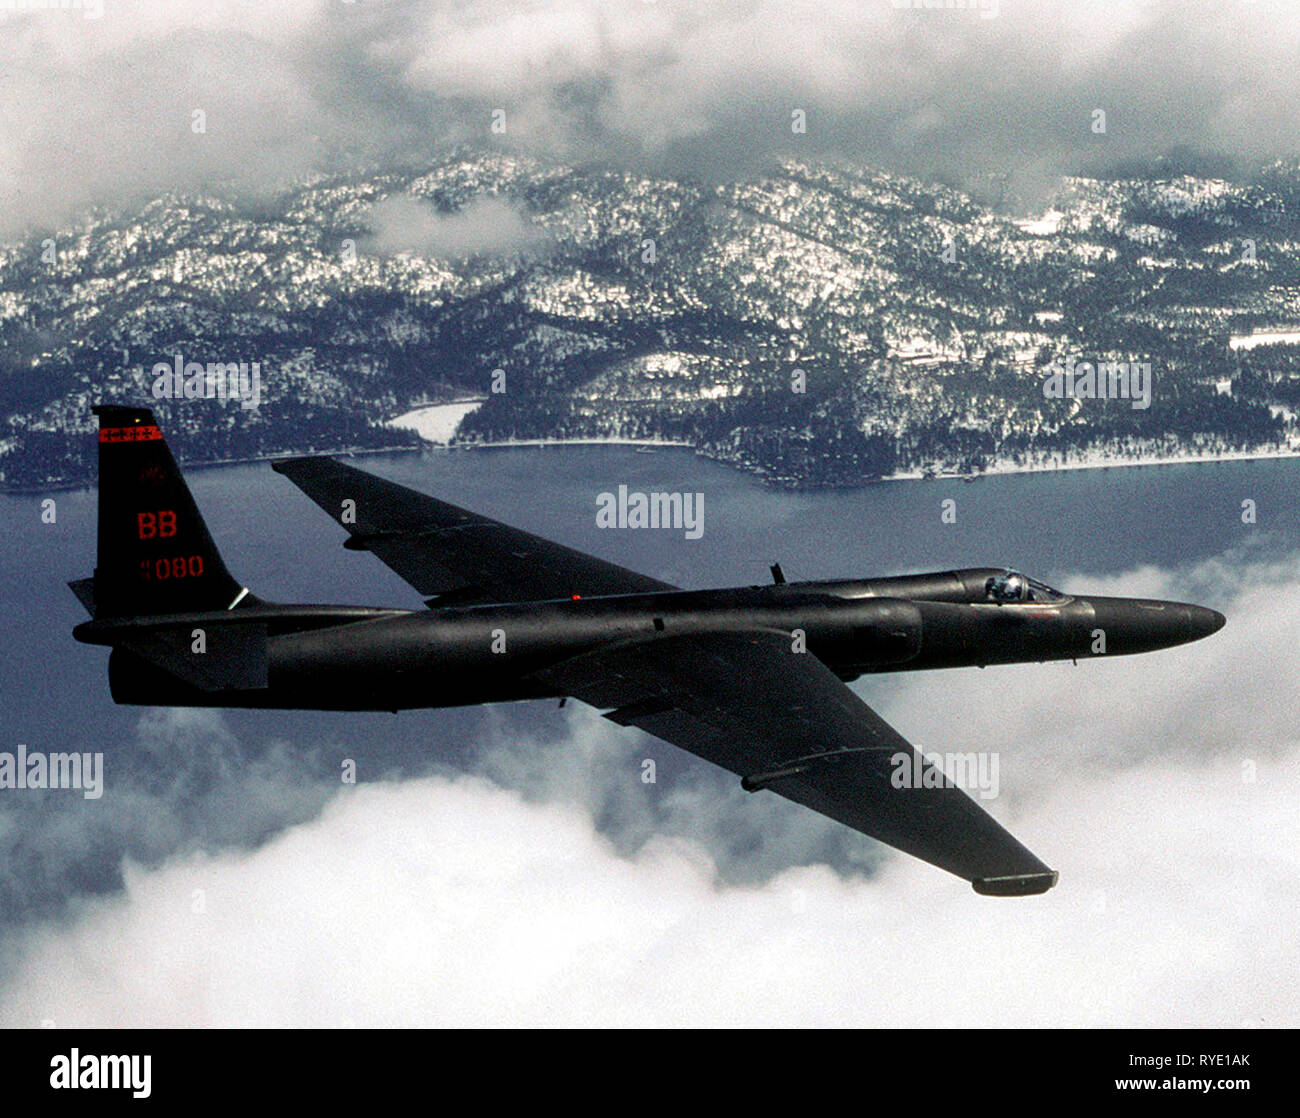 Right side view of a U-2 reconnaissance aircraft in flight. 1966 - Stock Image